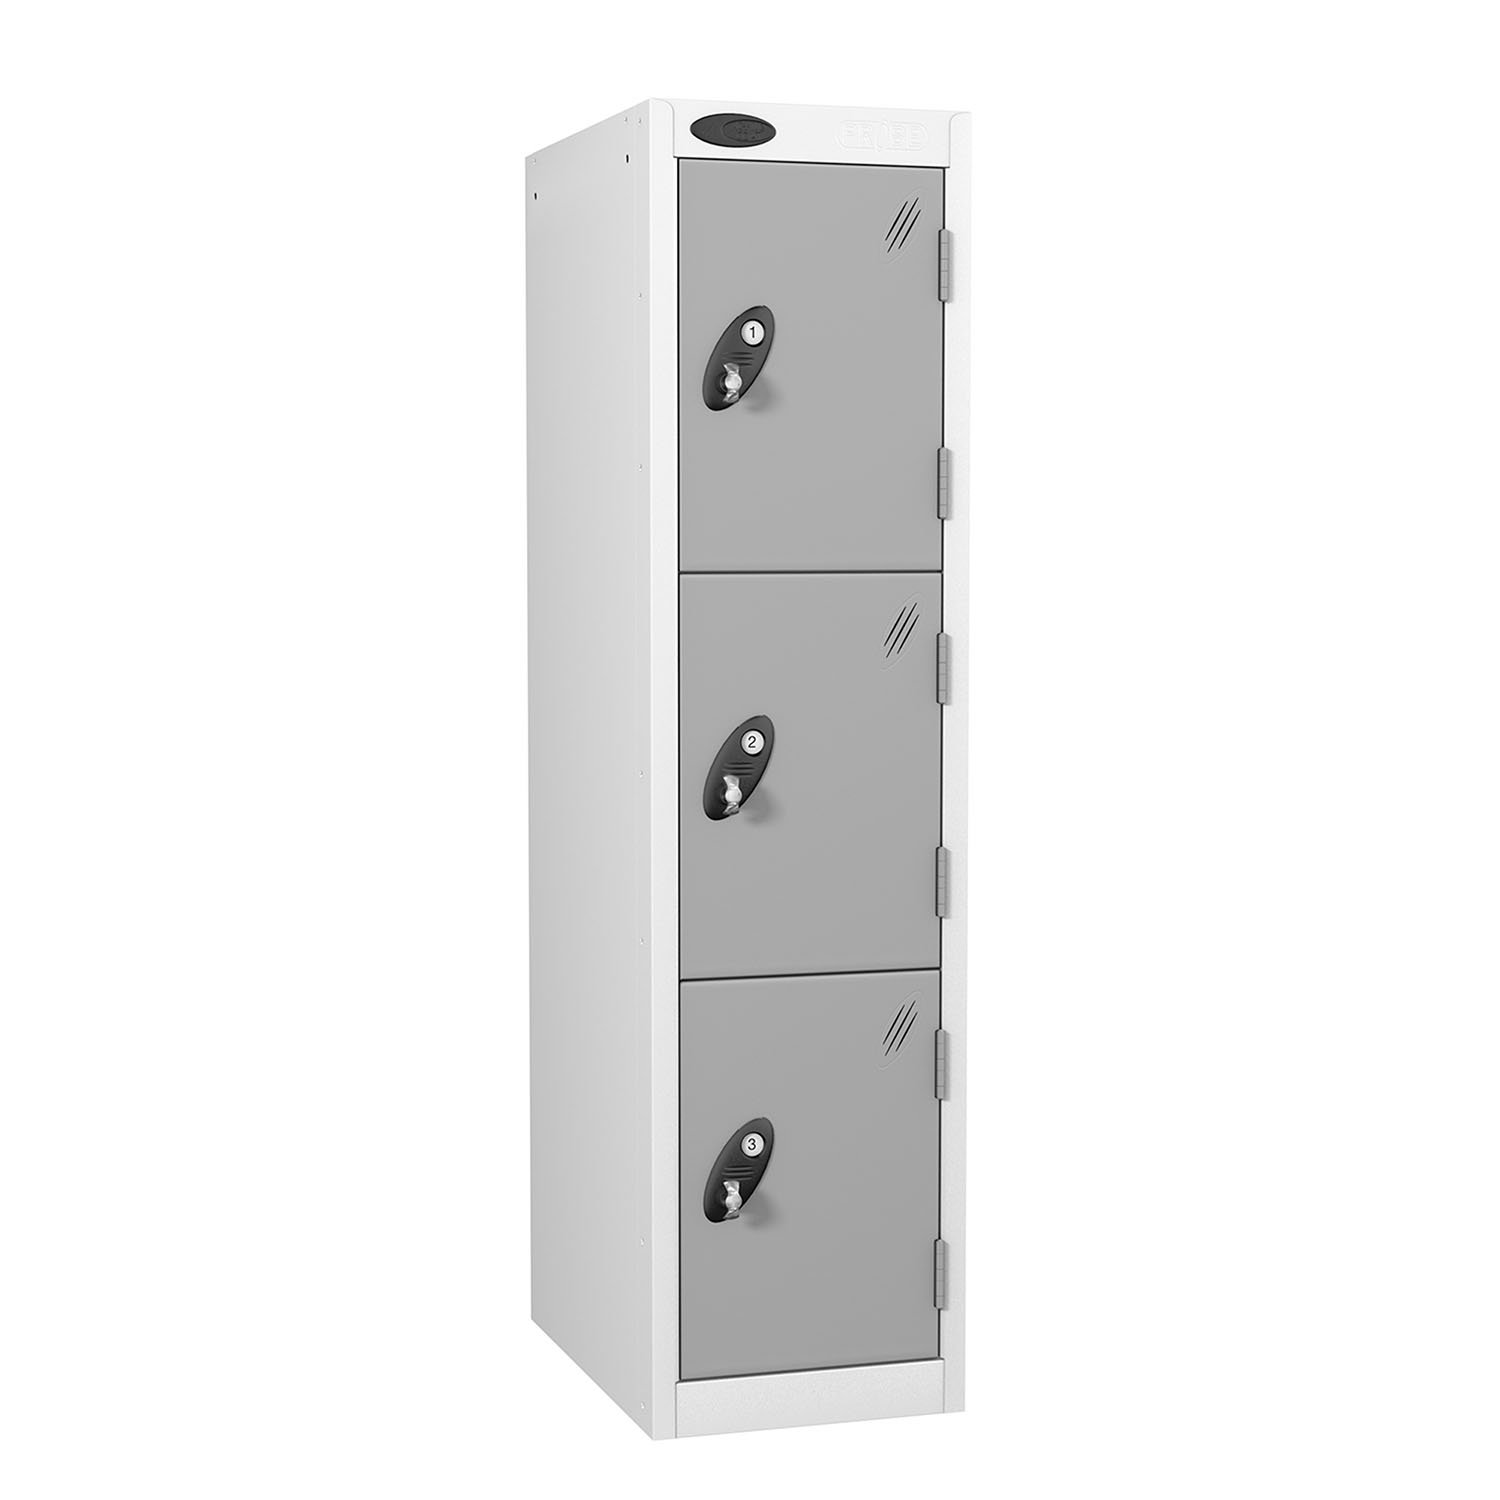 Probe 3 doors low locker in silver colour